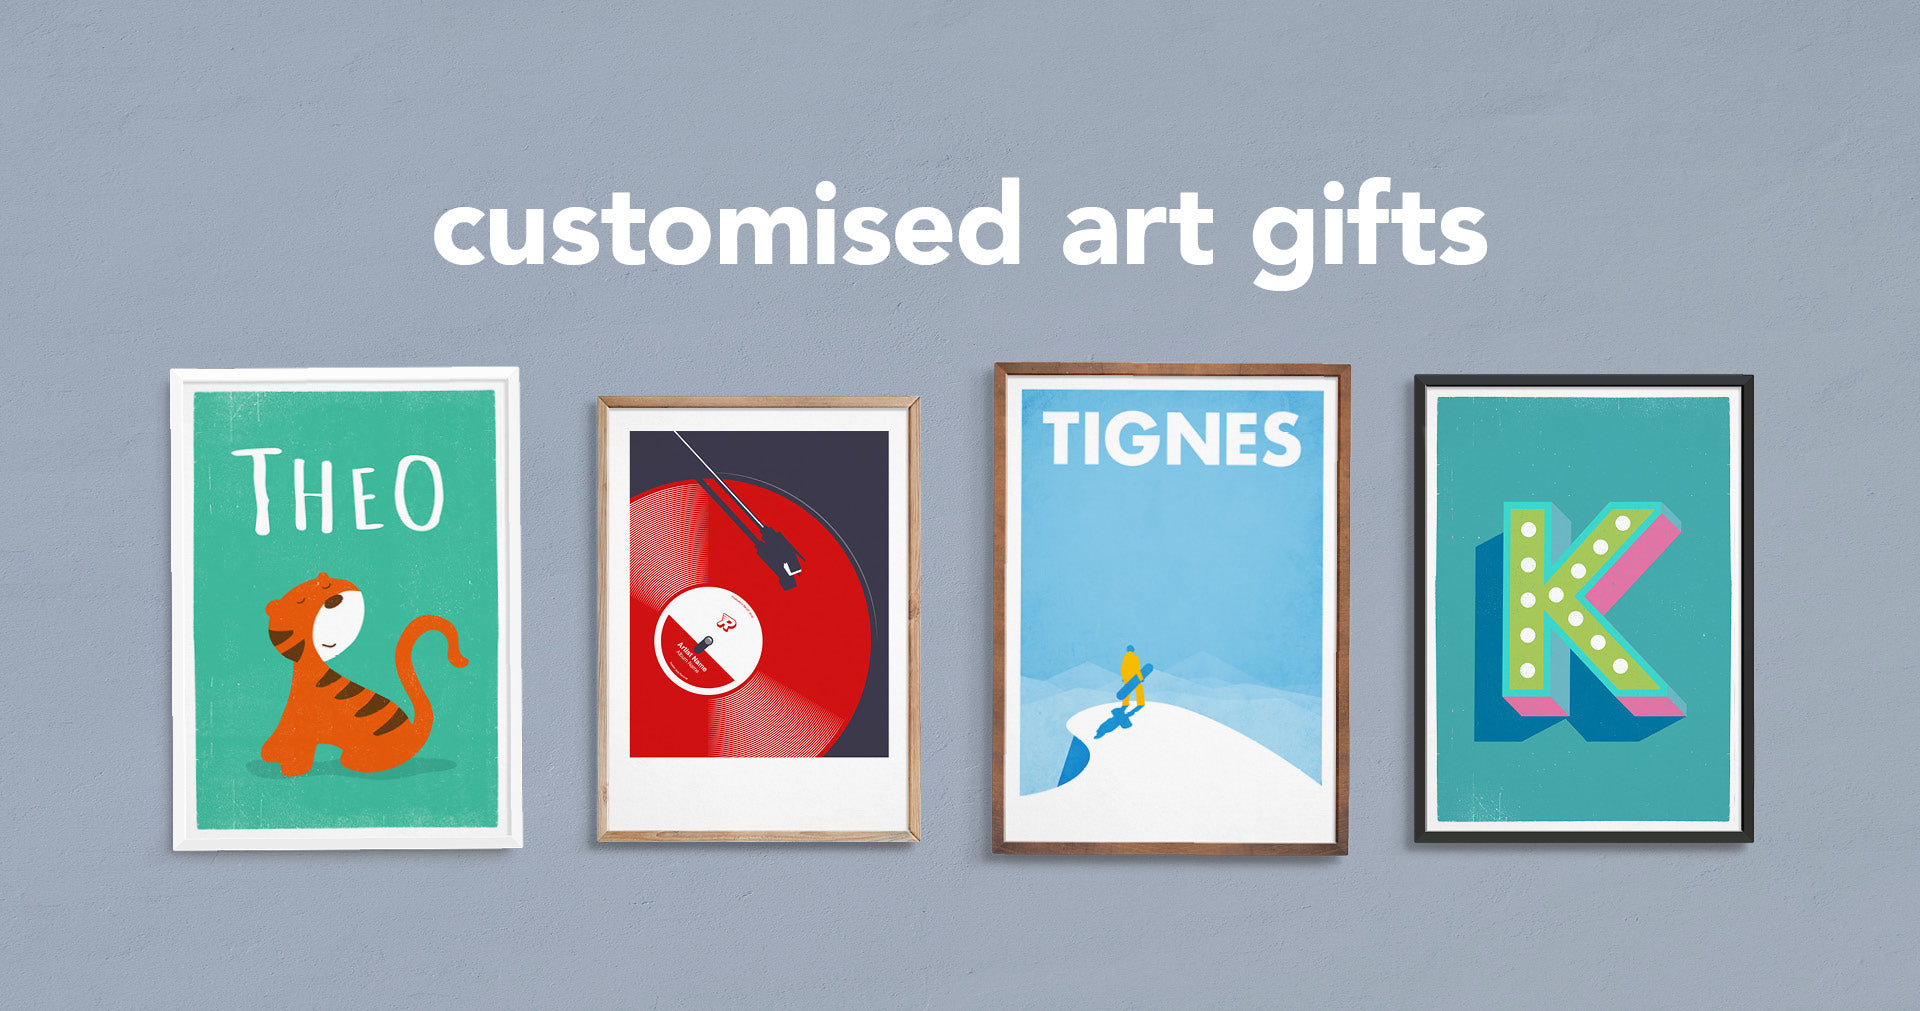 Customised art gifts for you to personalise